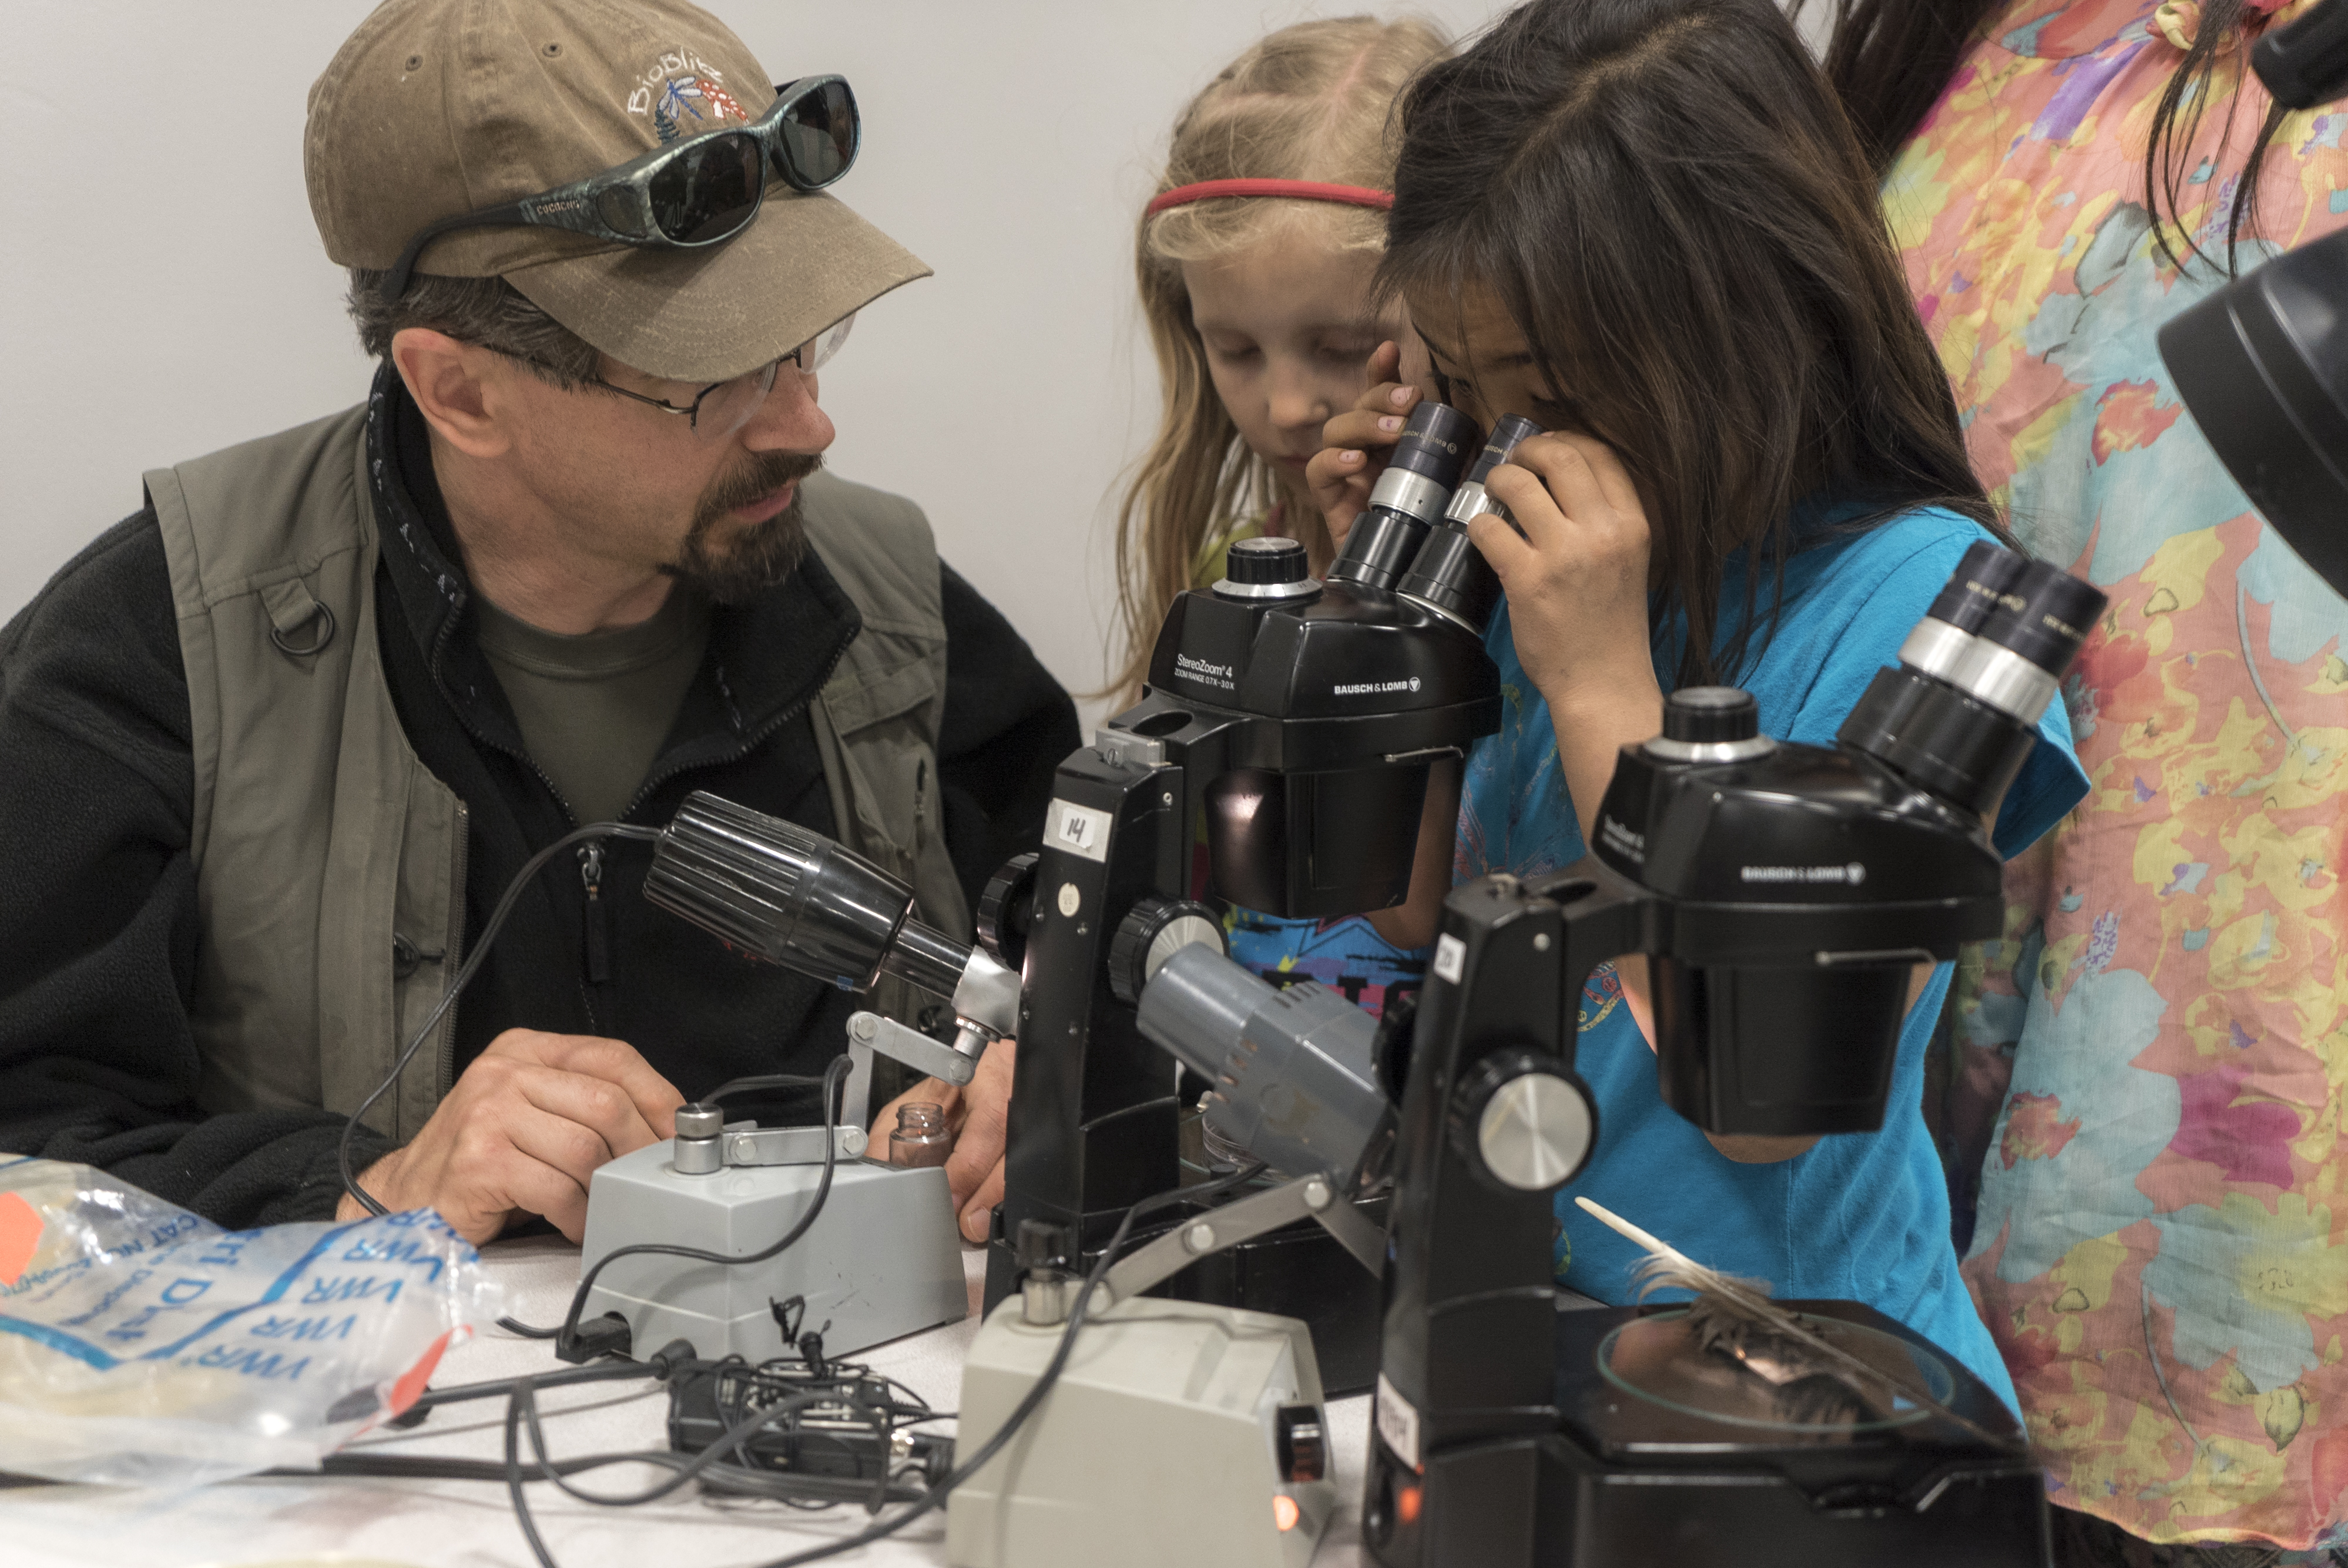 Seven-year-old Anna Nukapigak looks through a microscope at samples. Jeff Rasic and the rest of the students look on.